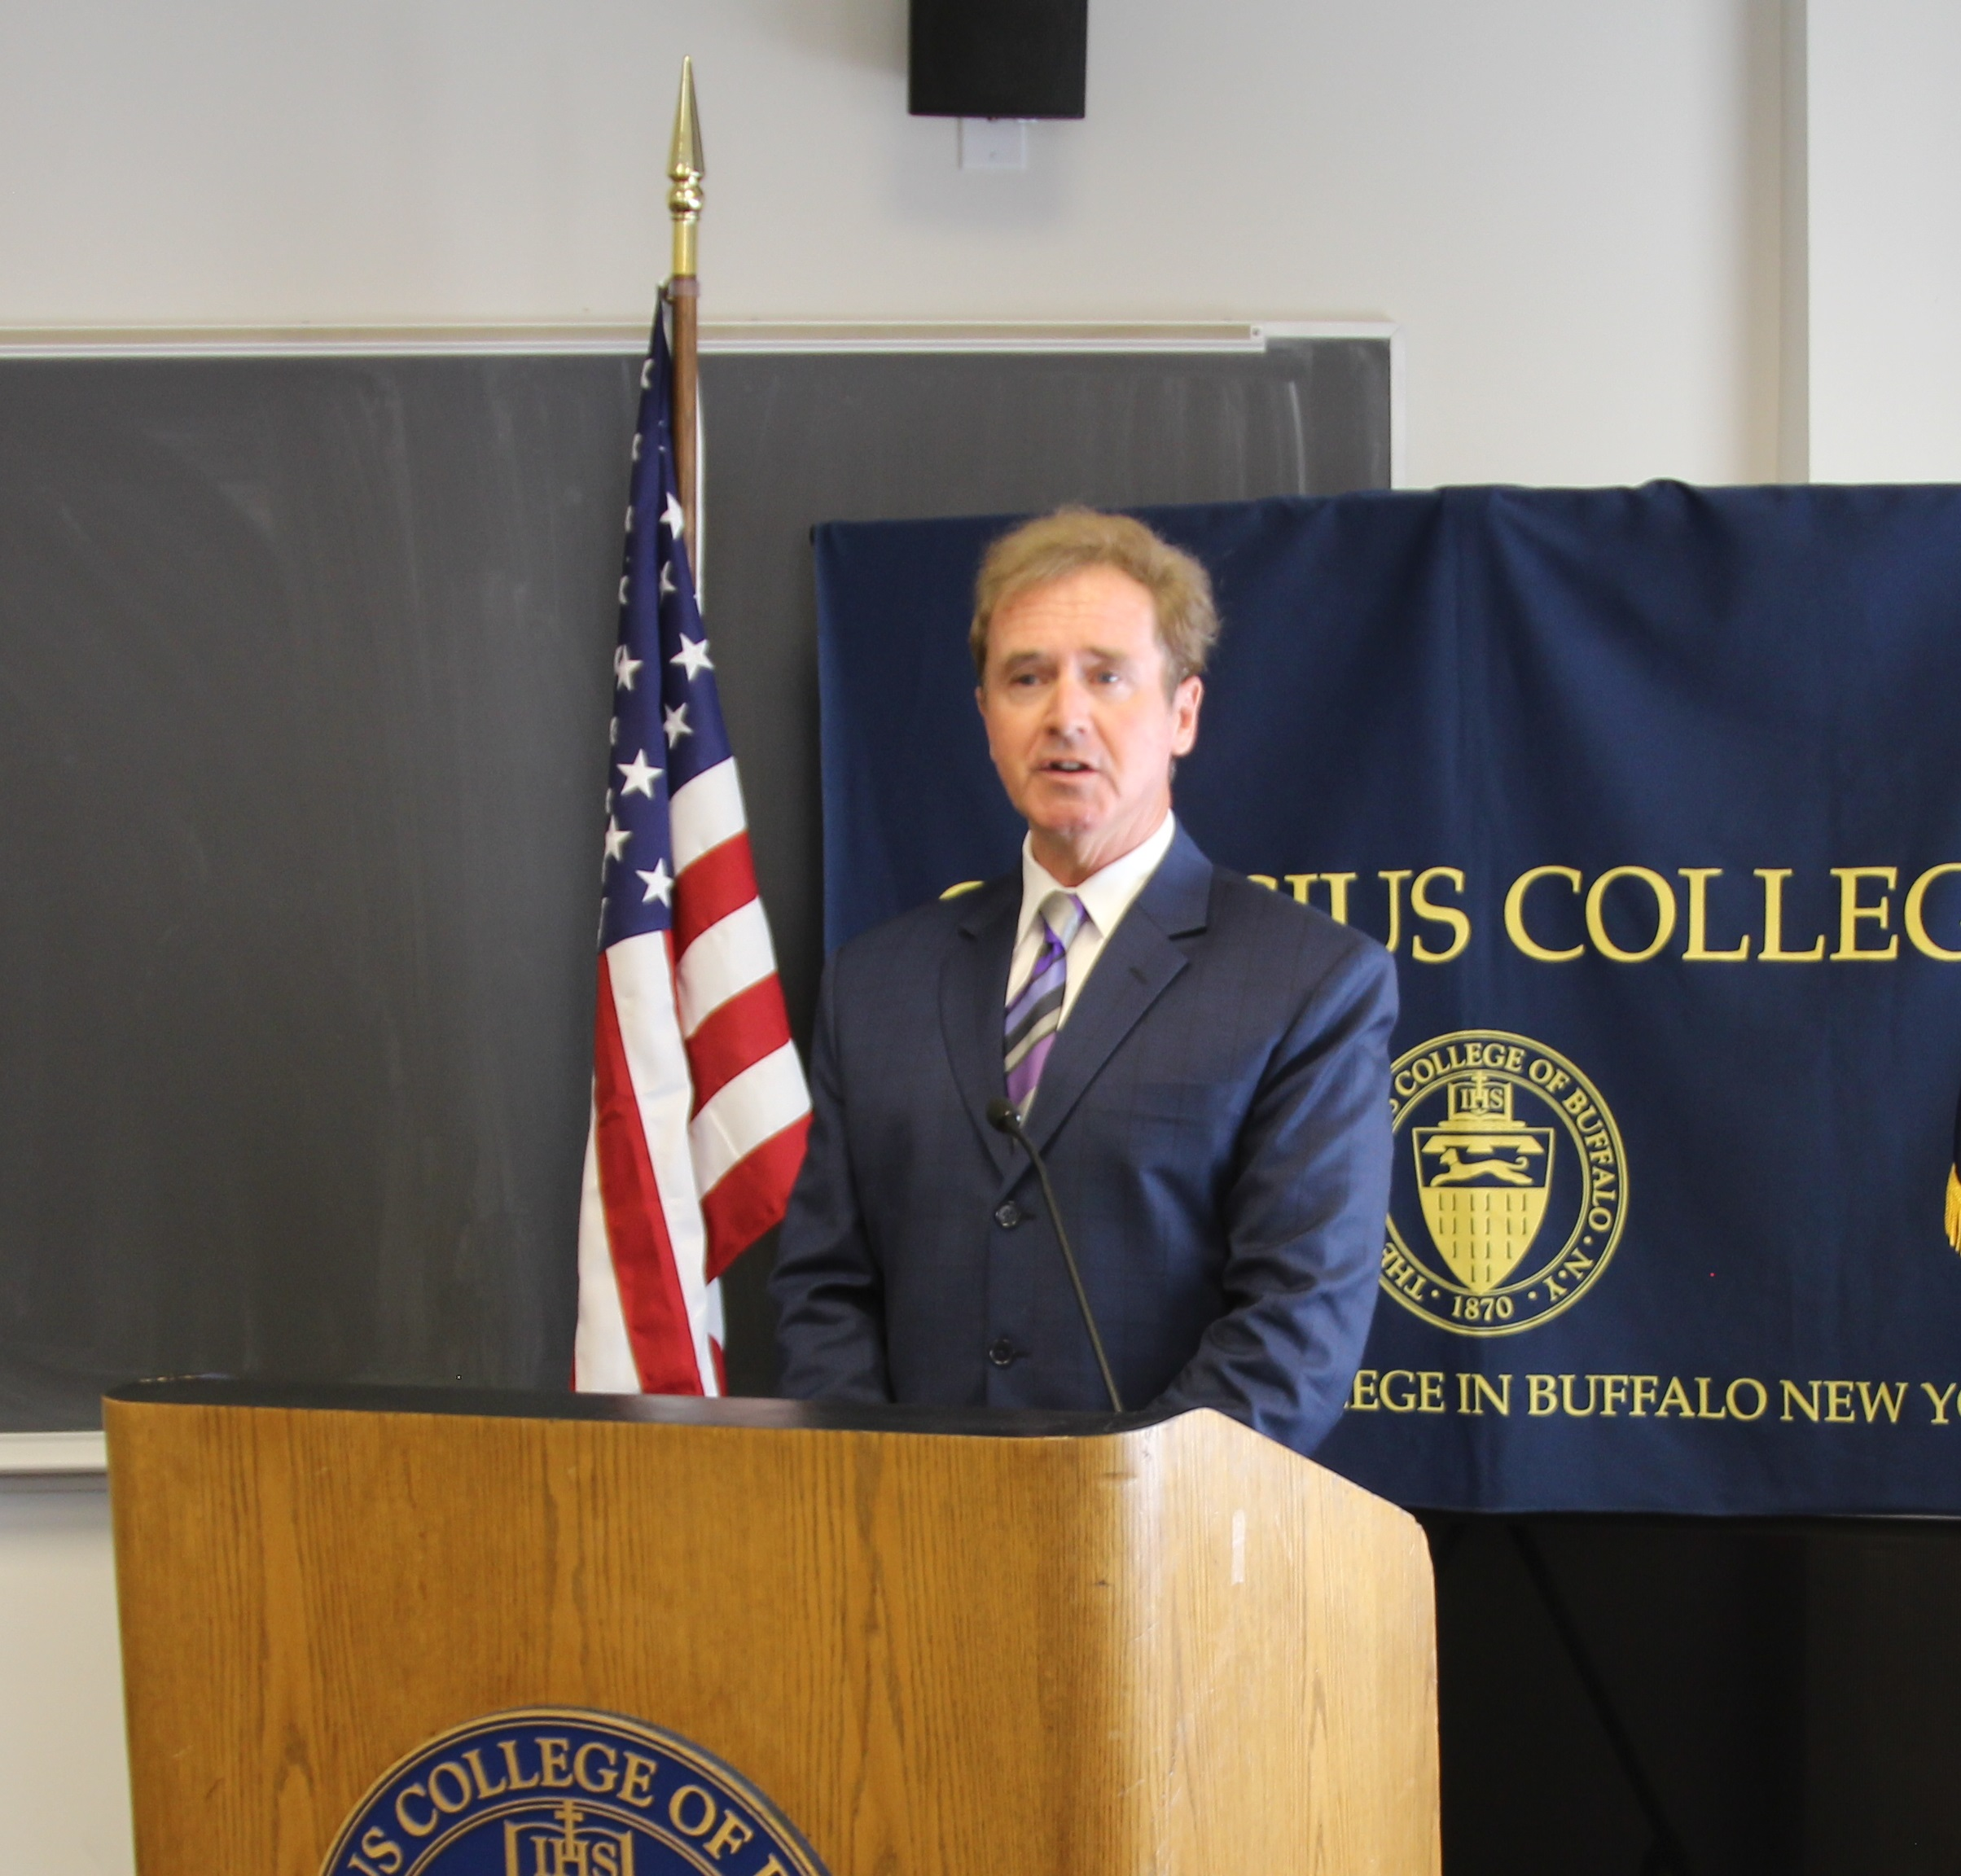 Congressman higgins announces veterans education flexibility act during news conference at canisius college the dome